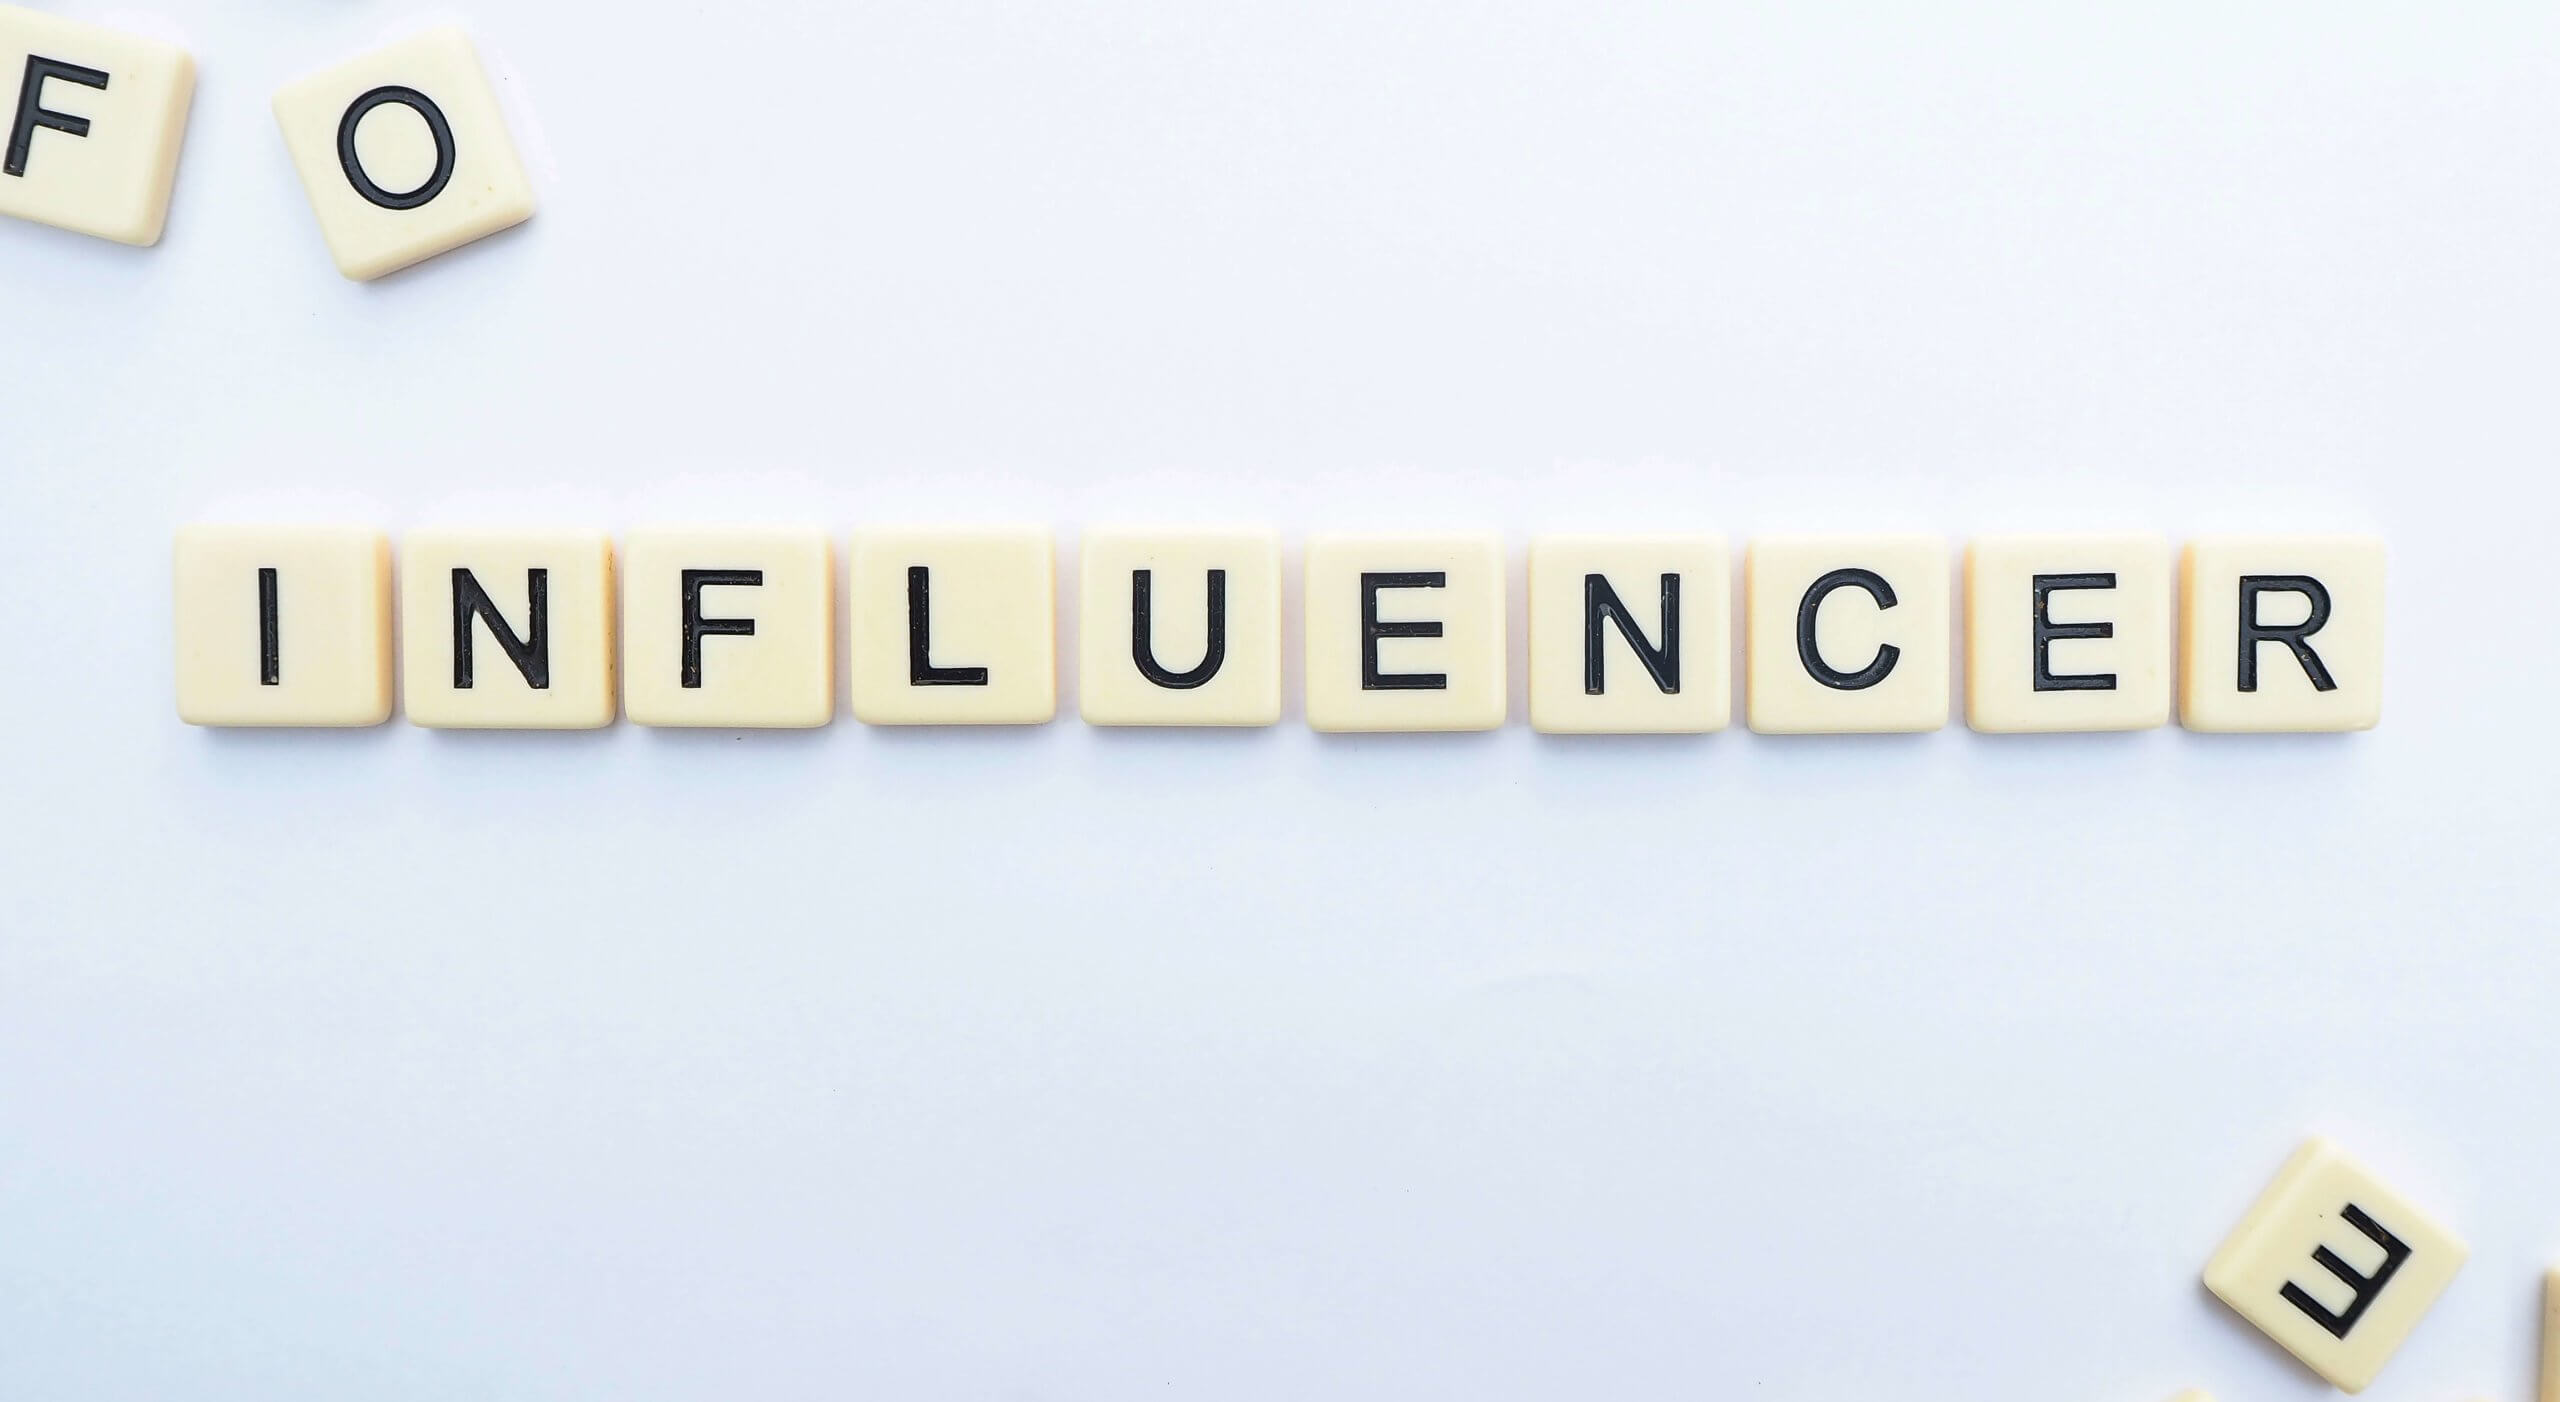 Influencer Marketing Spelled Out With Scrabble Tiles